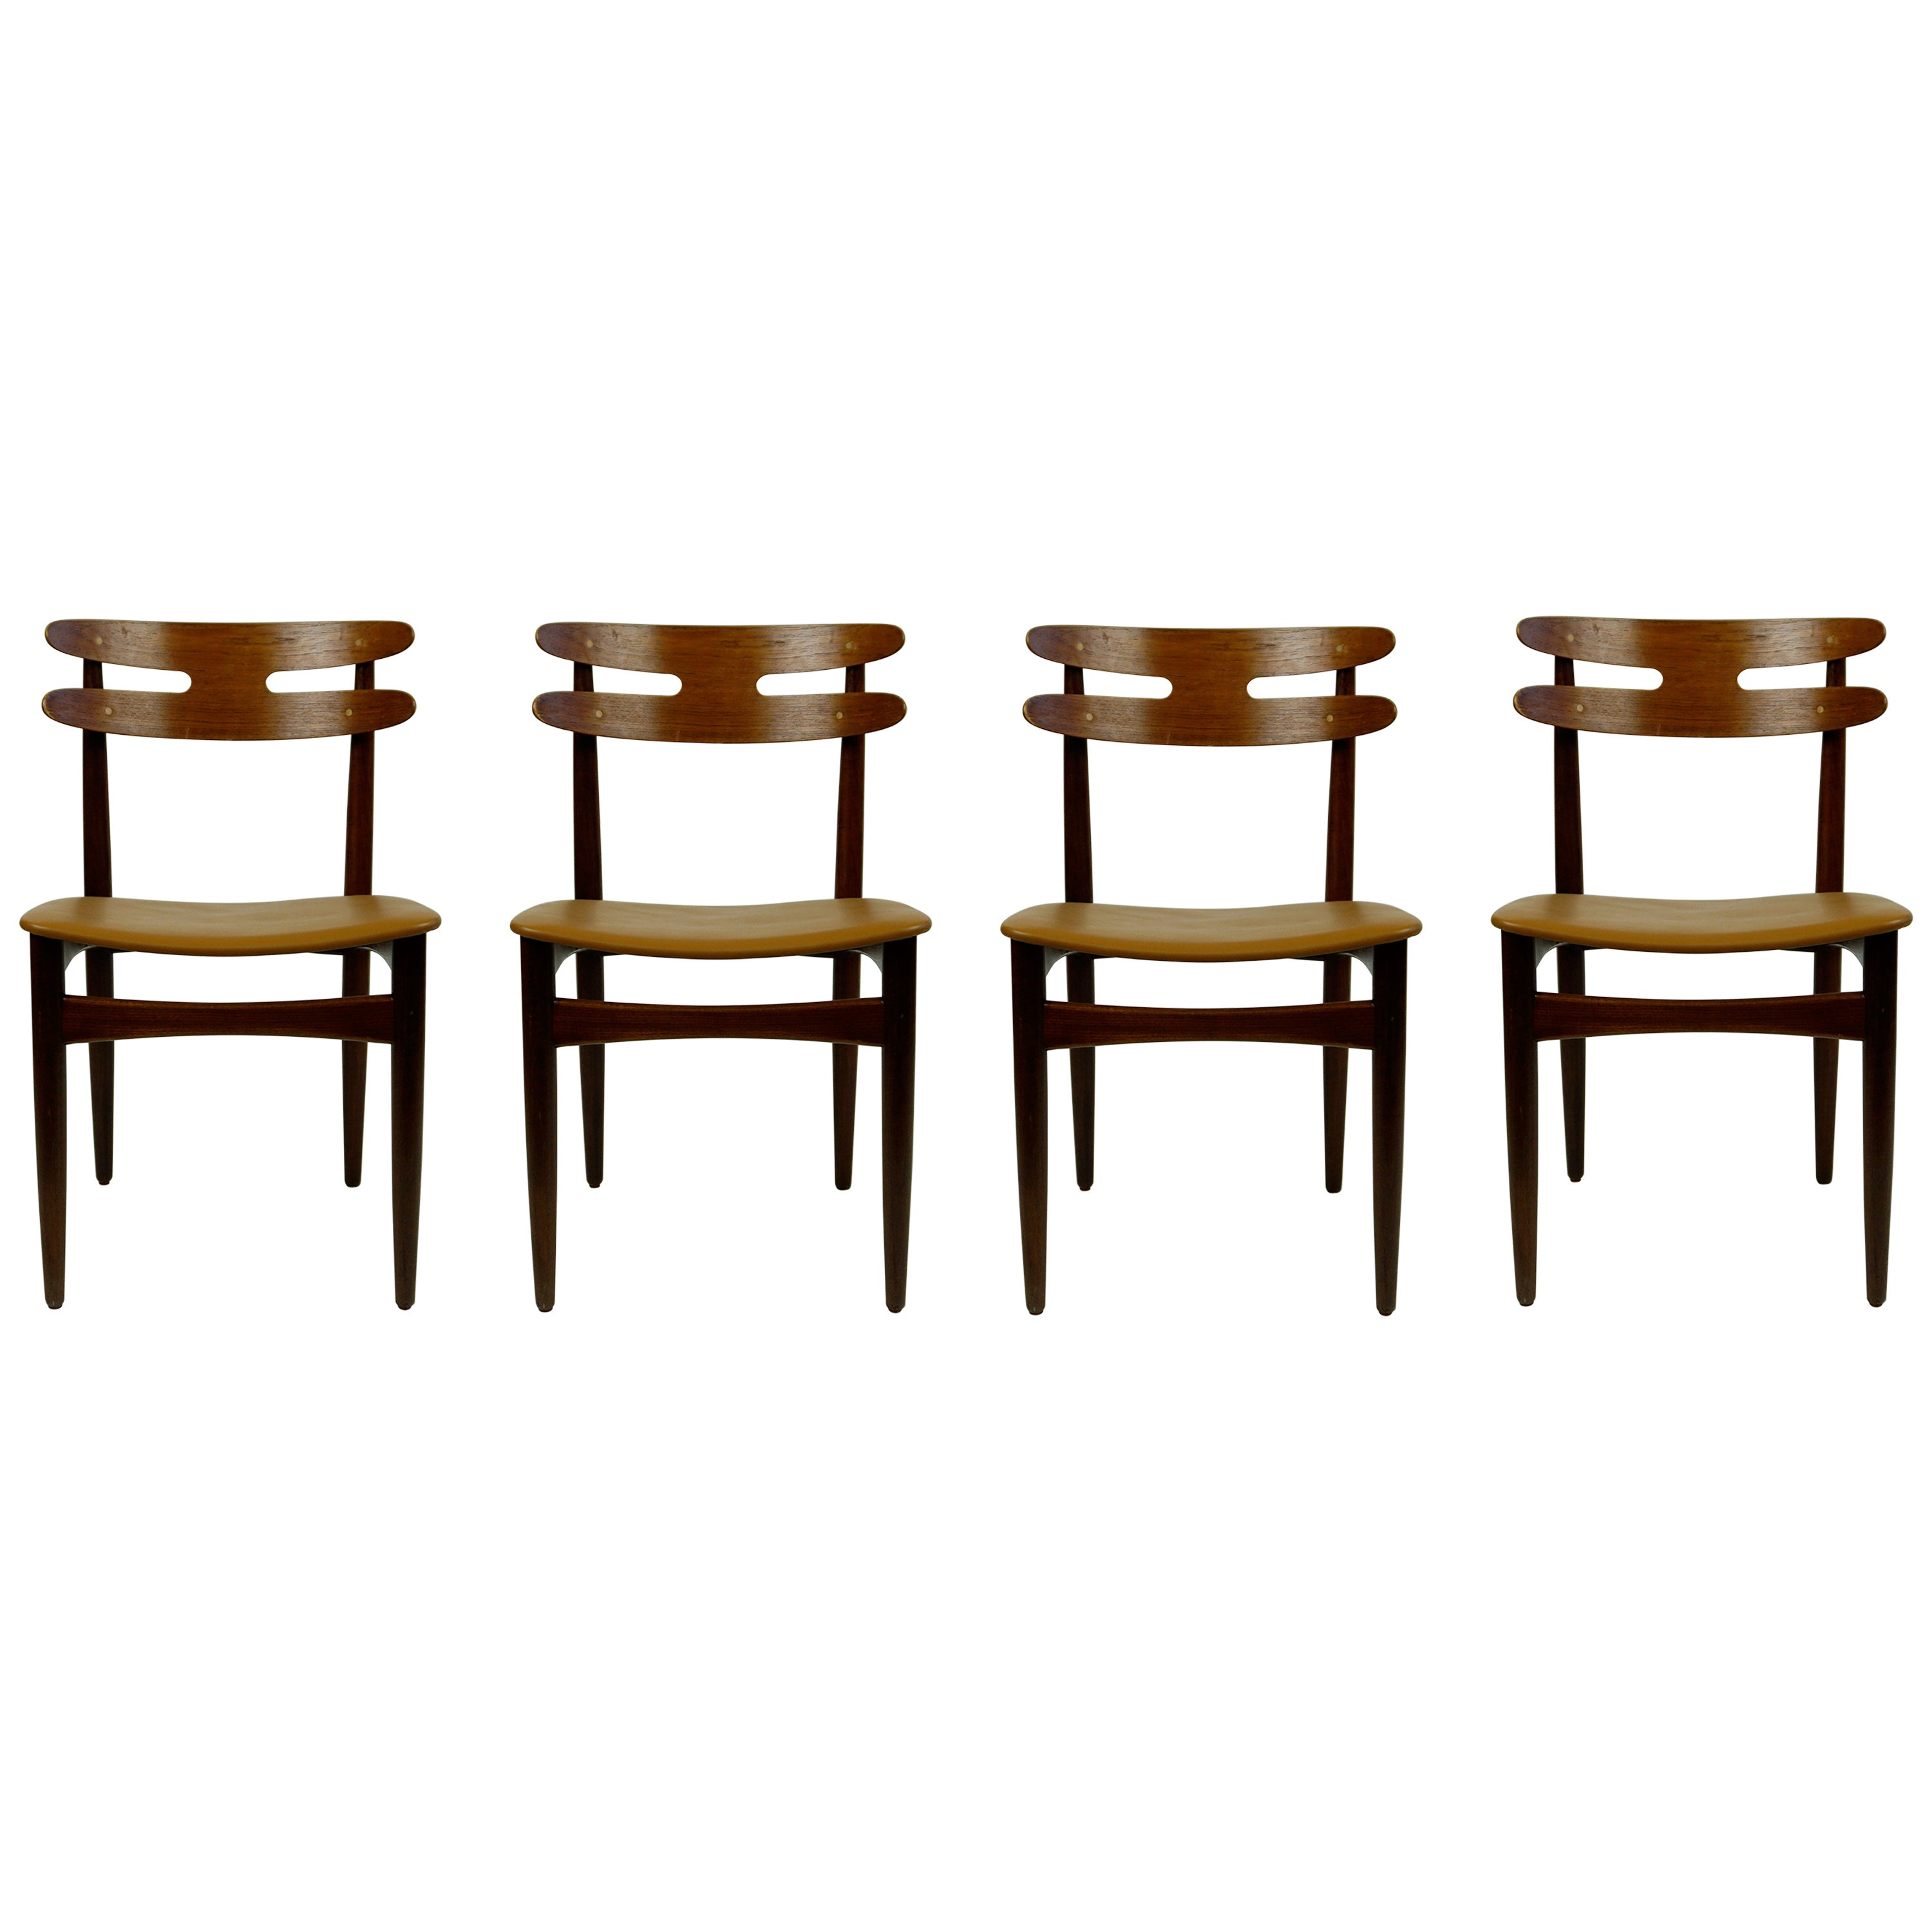 Set of Four Danish Teak Dining Chairs Mod. 178 by Johannes Andersen for Bramin